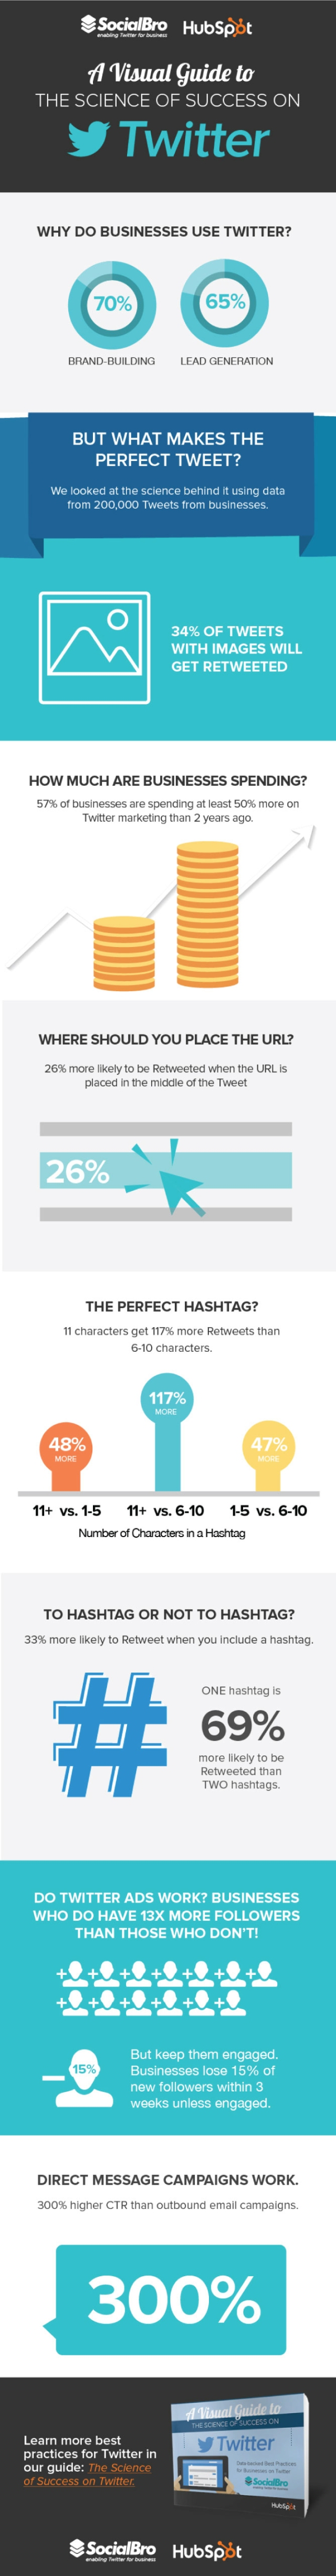 How to Succeed on Twitter 10 Proven Stats To Guide Your Strategy